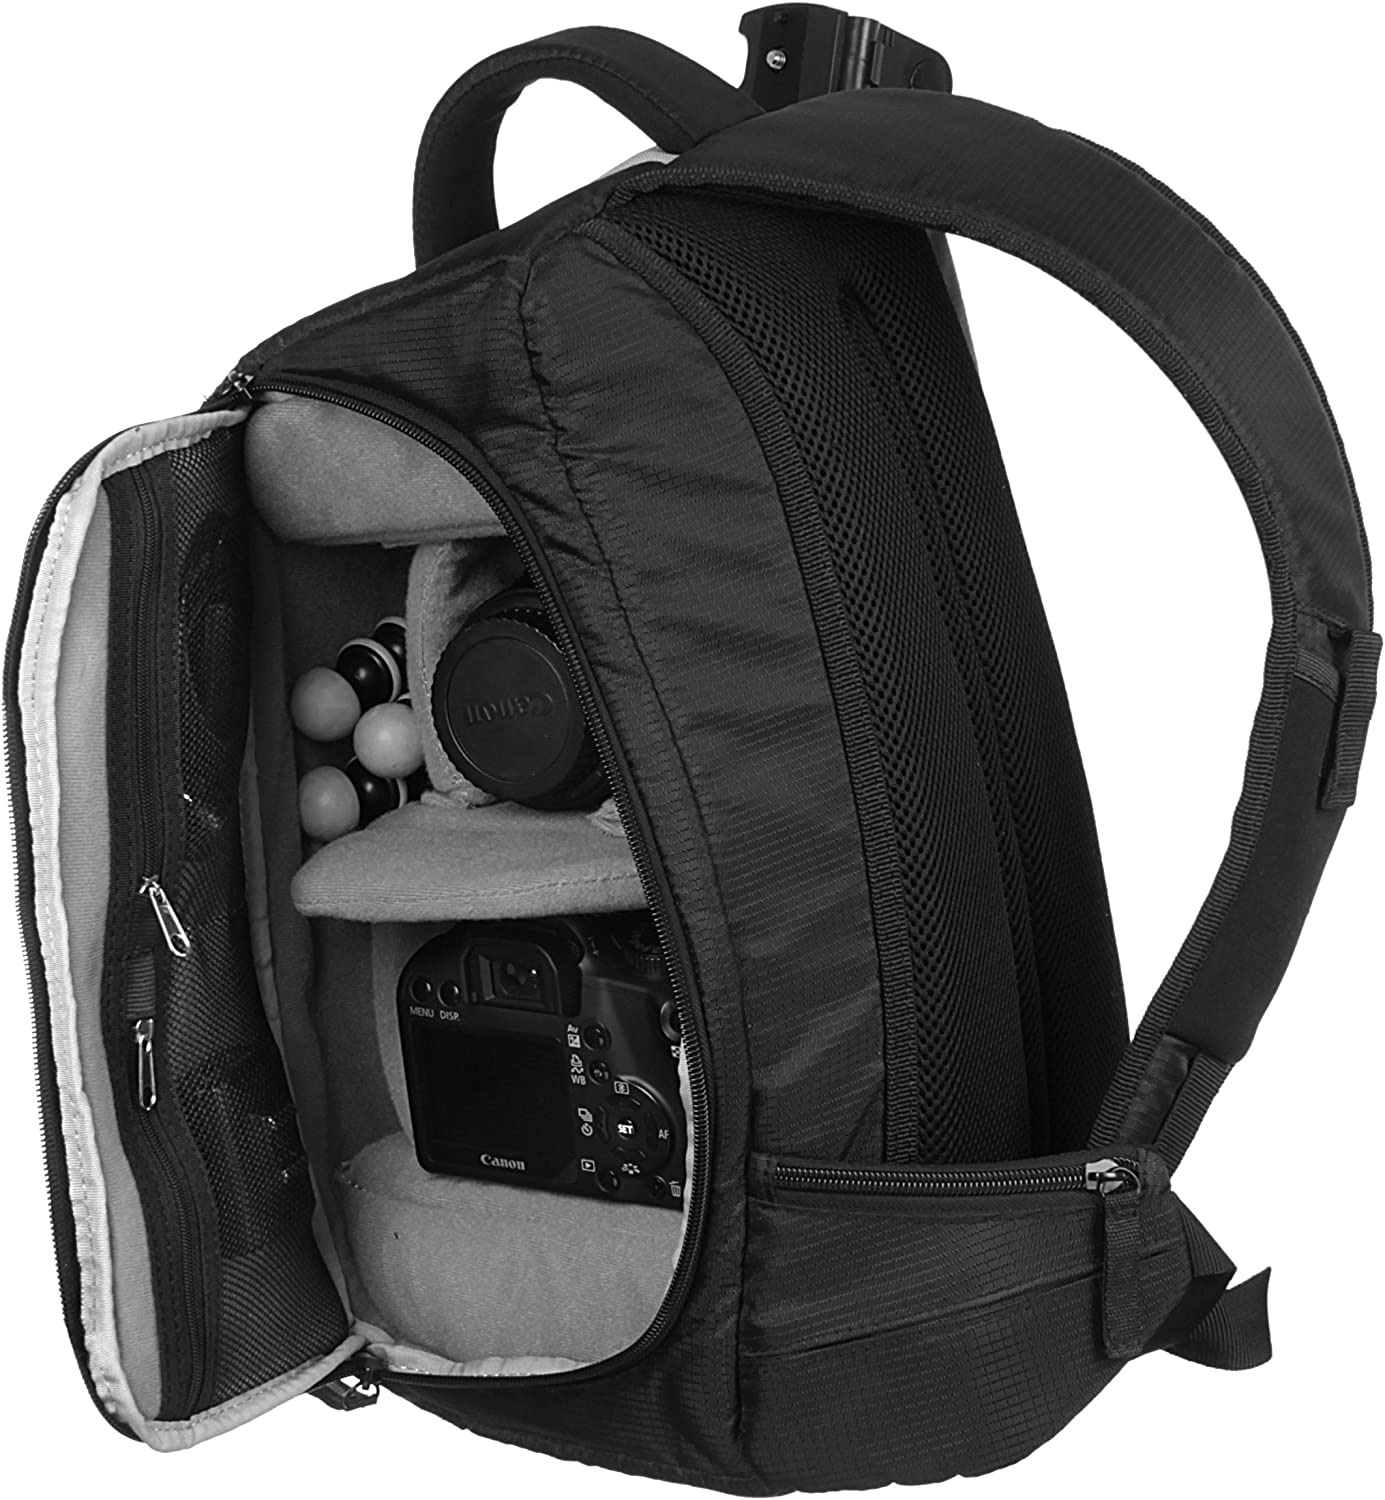 Digital SLR Trendz Back Pack for SLR Black Bridge and Compact System Cameras